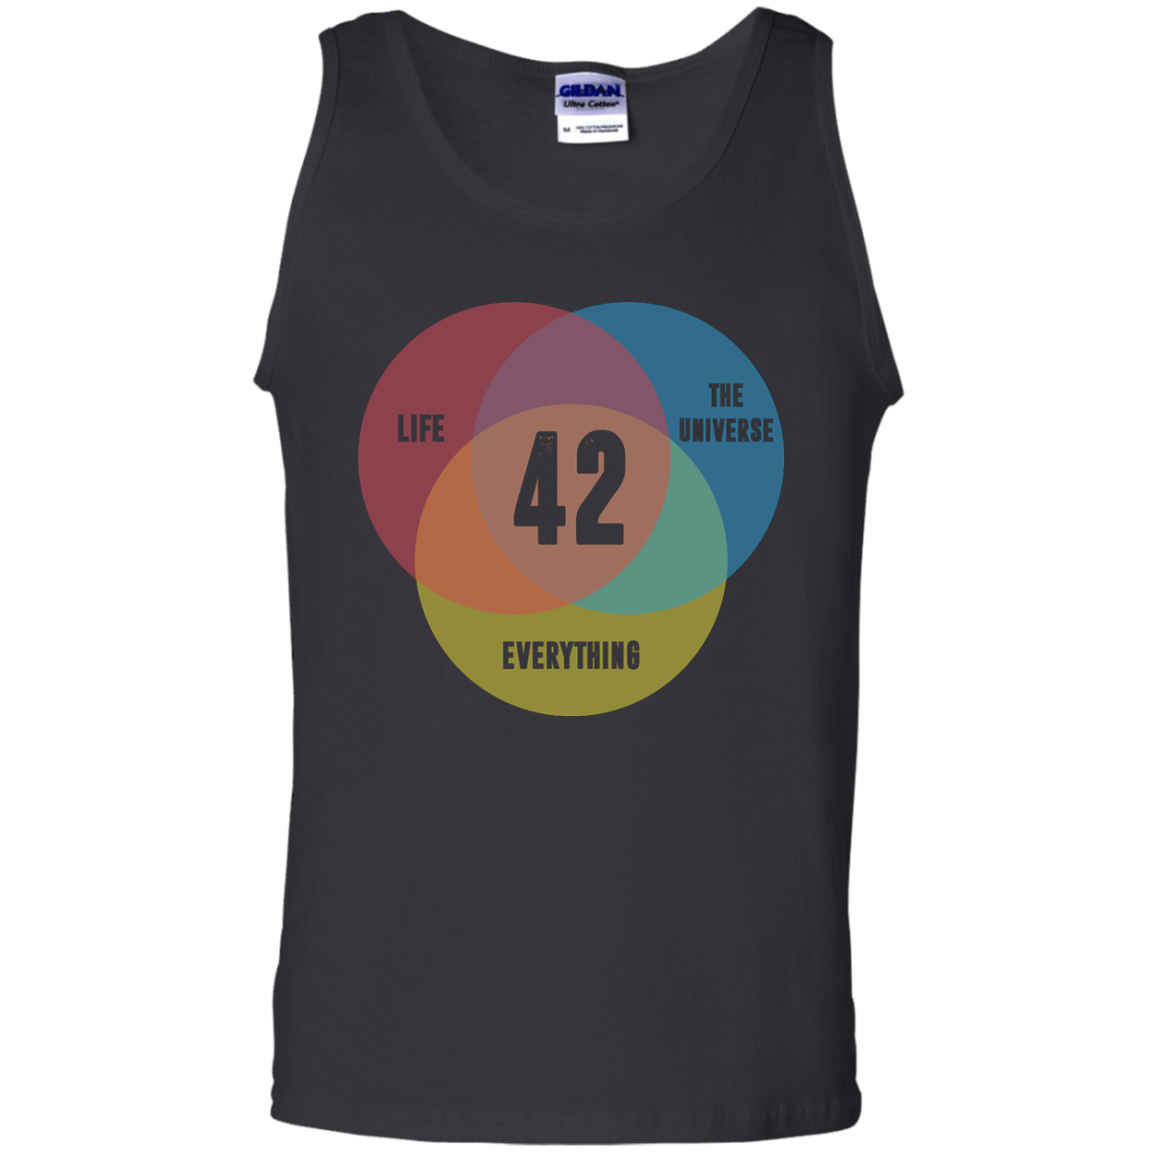 Venn diagram life the universe everything life meaning is 42 venn diagram life the universe everything life meaning is 42 t shirt pooptronica